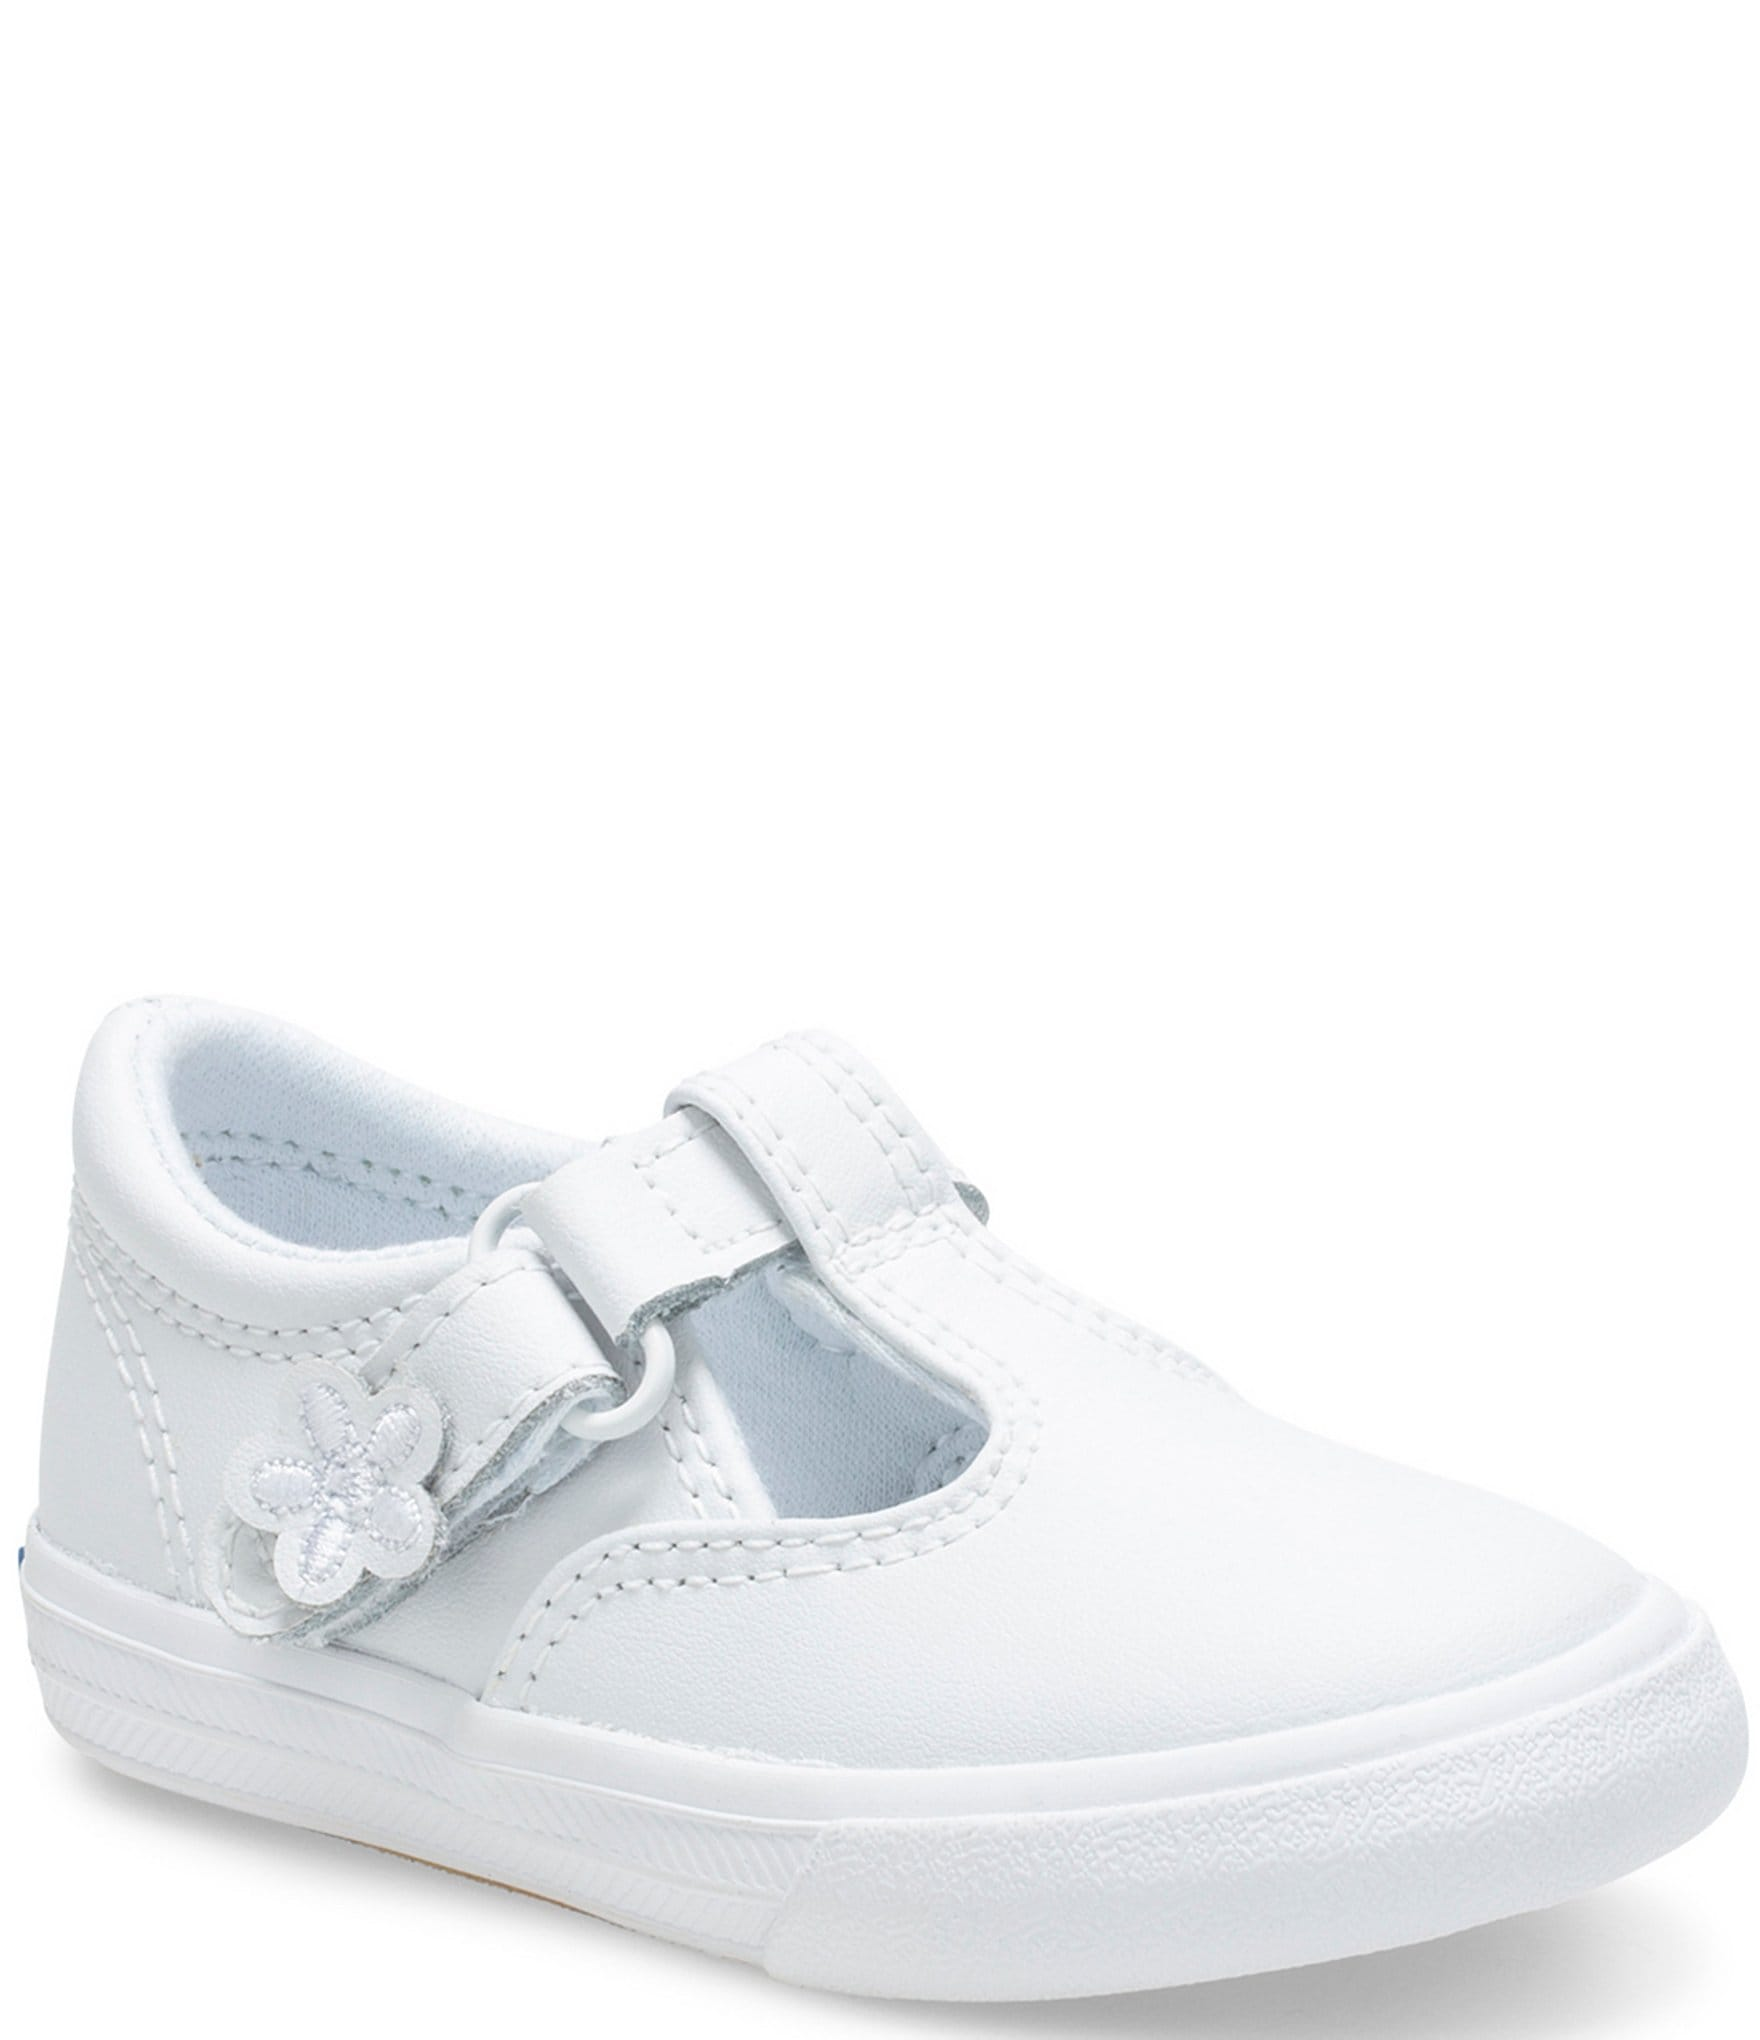 Girls Mary Jane Tennis Shoes